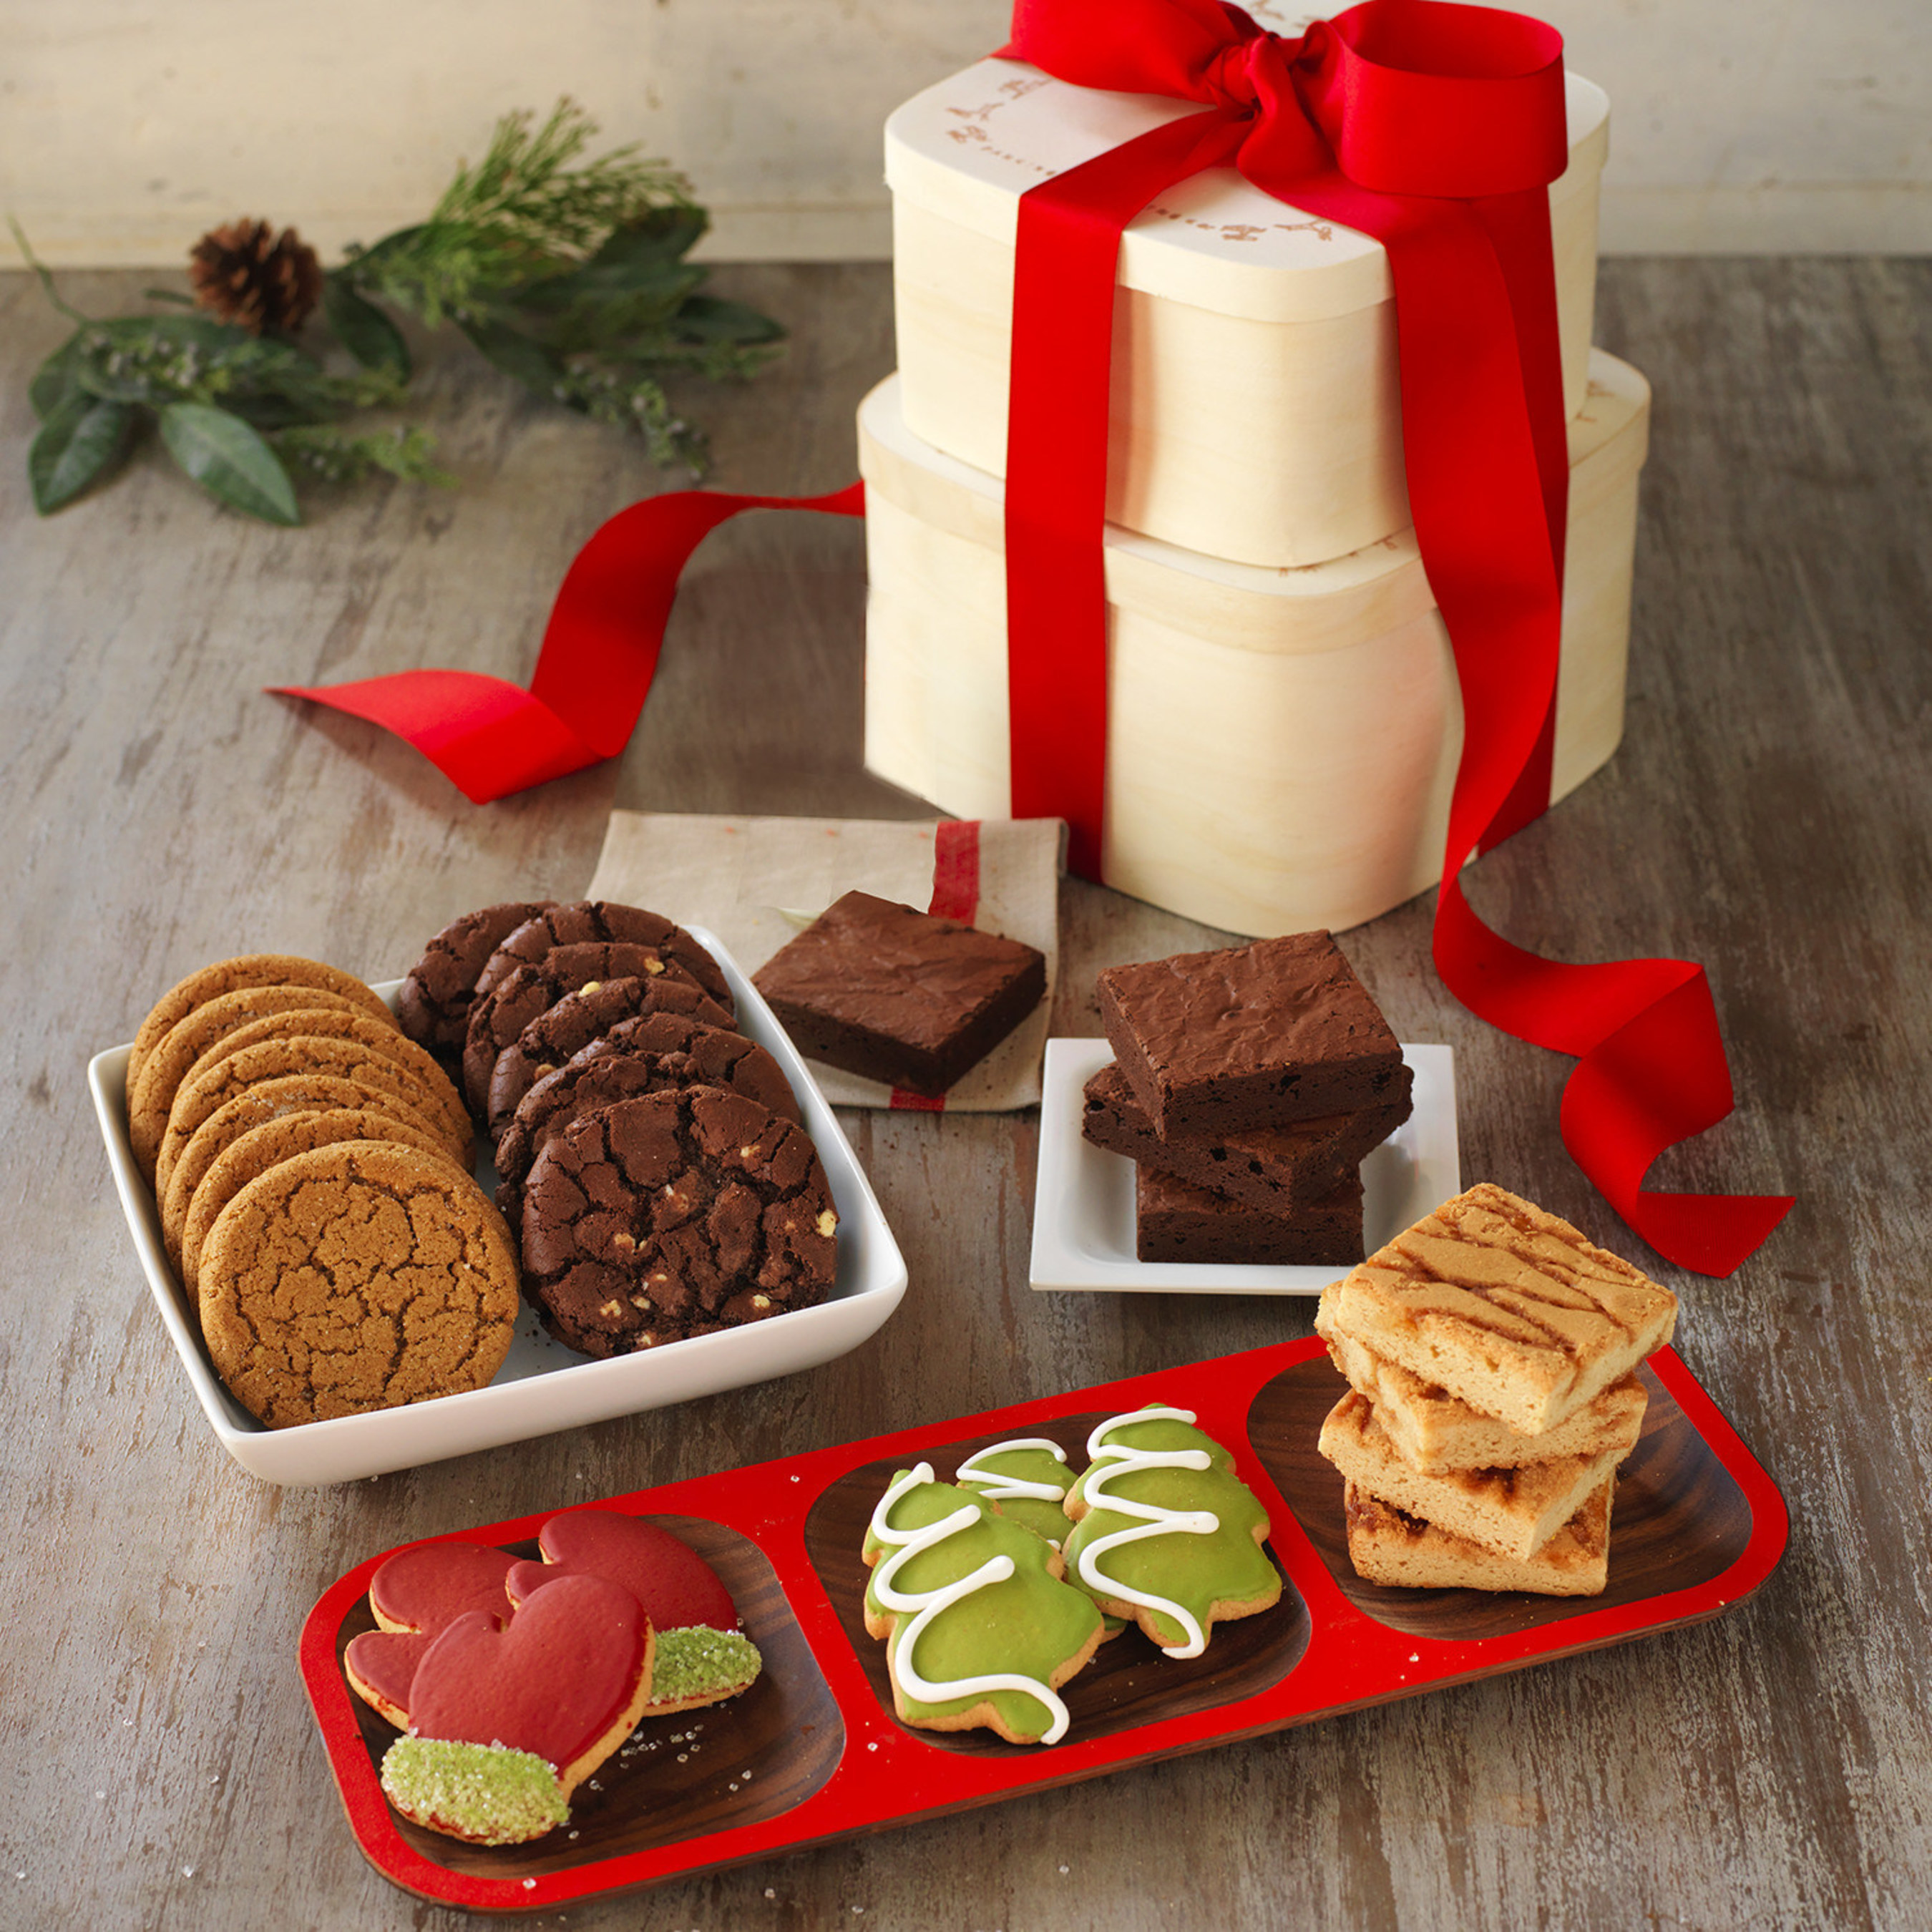 Dancing Deer Baking Company Helps Make Holiday Shopping Easy With ...